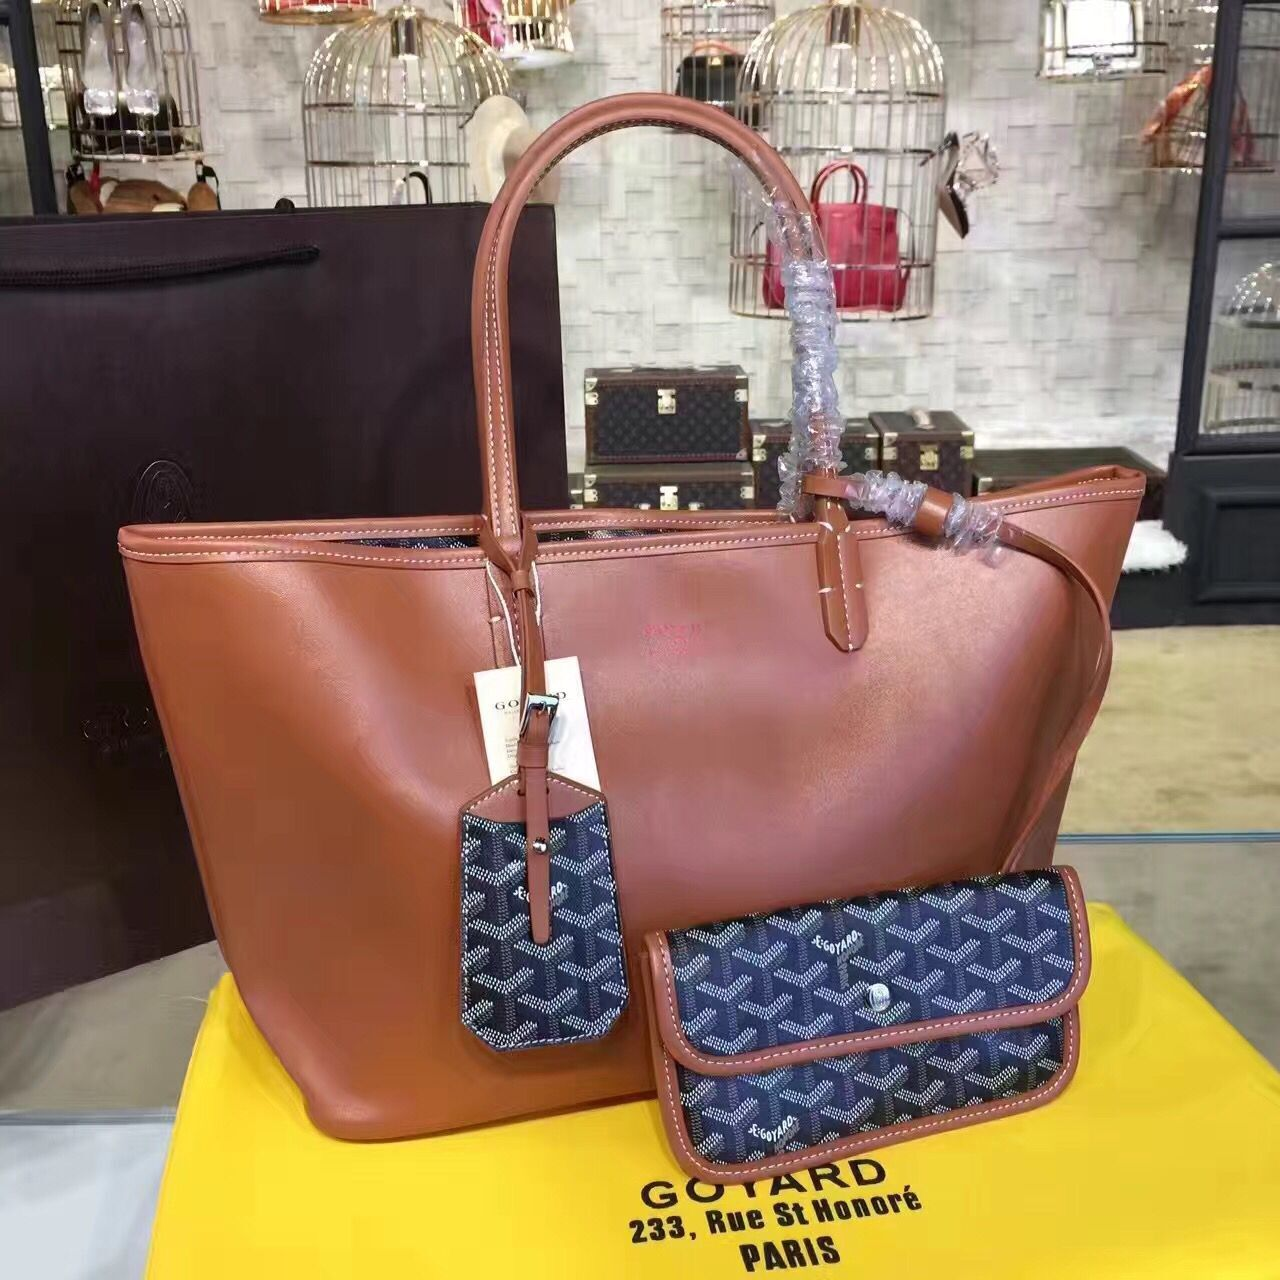 Goyard Y Doodling Calfskin Leather Tote Bag 7901 Brown